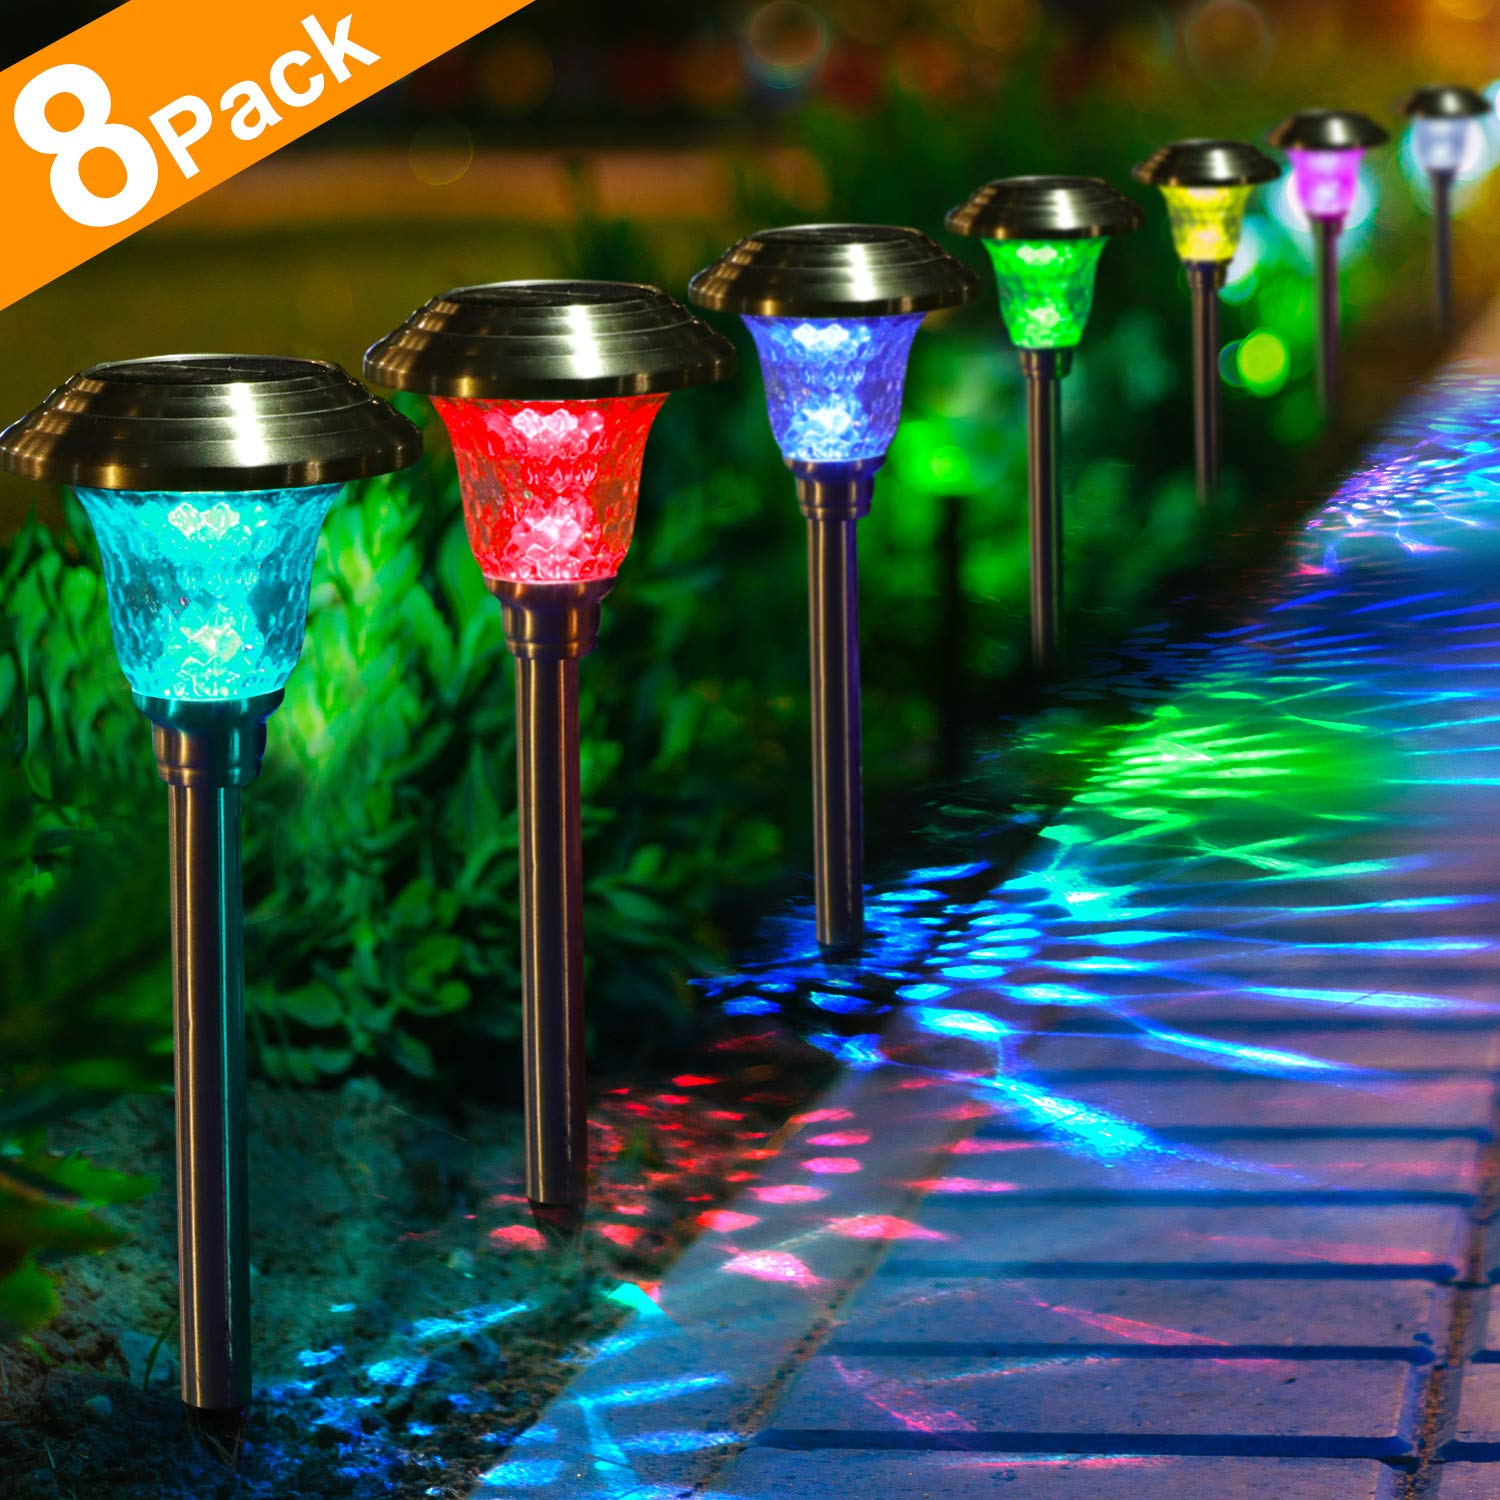 Solar Lights with 7 Color Changing Pathway Outdoor Garden Stake Glass Stainless Steel Waterproof Auto On/off Sun Powered Landscape Colorful Lighting Effect for Yard Patio Walkway In-Ground Spike by BEAU JARDIN